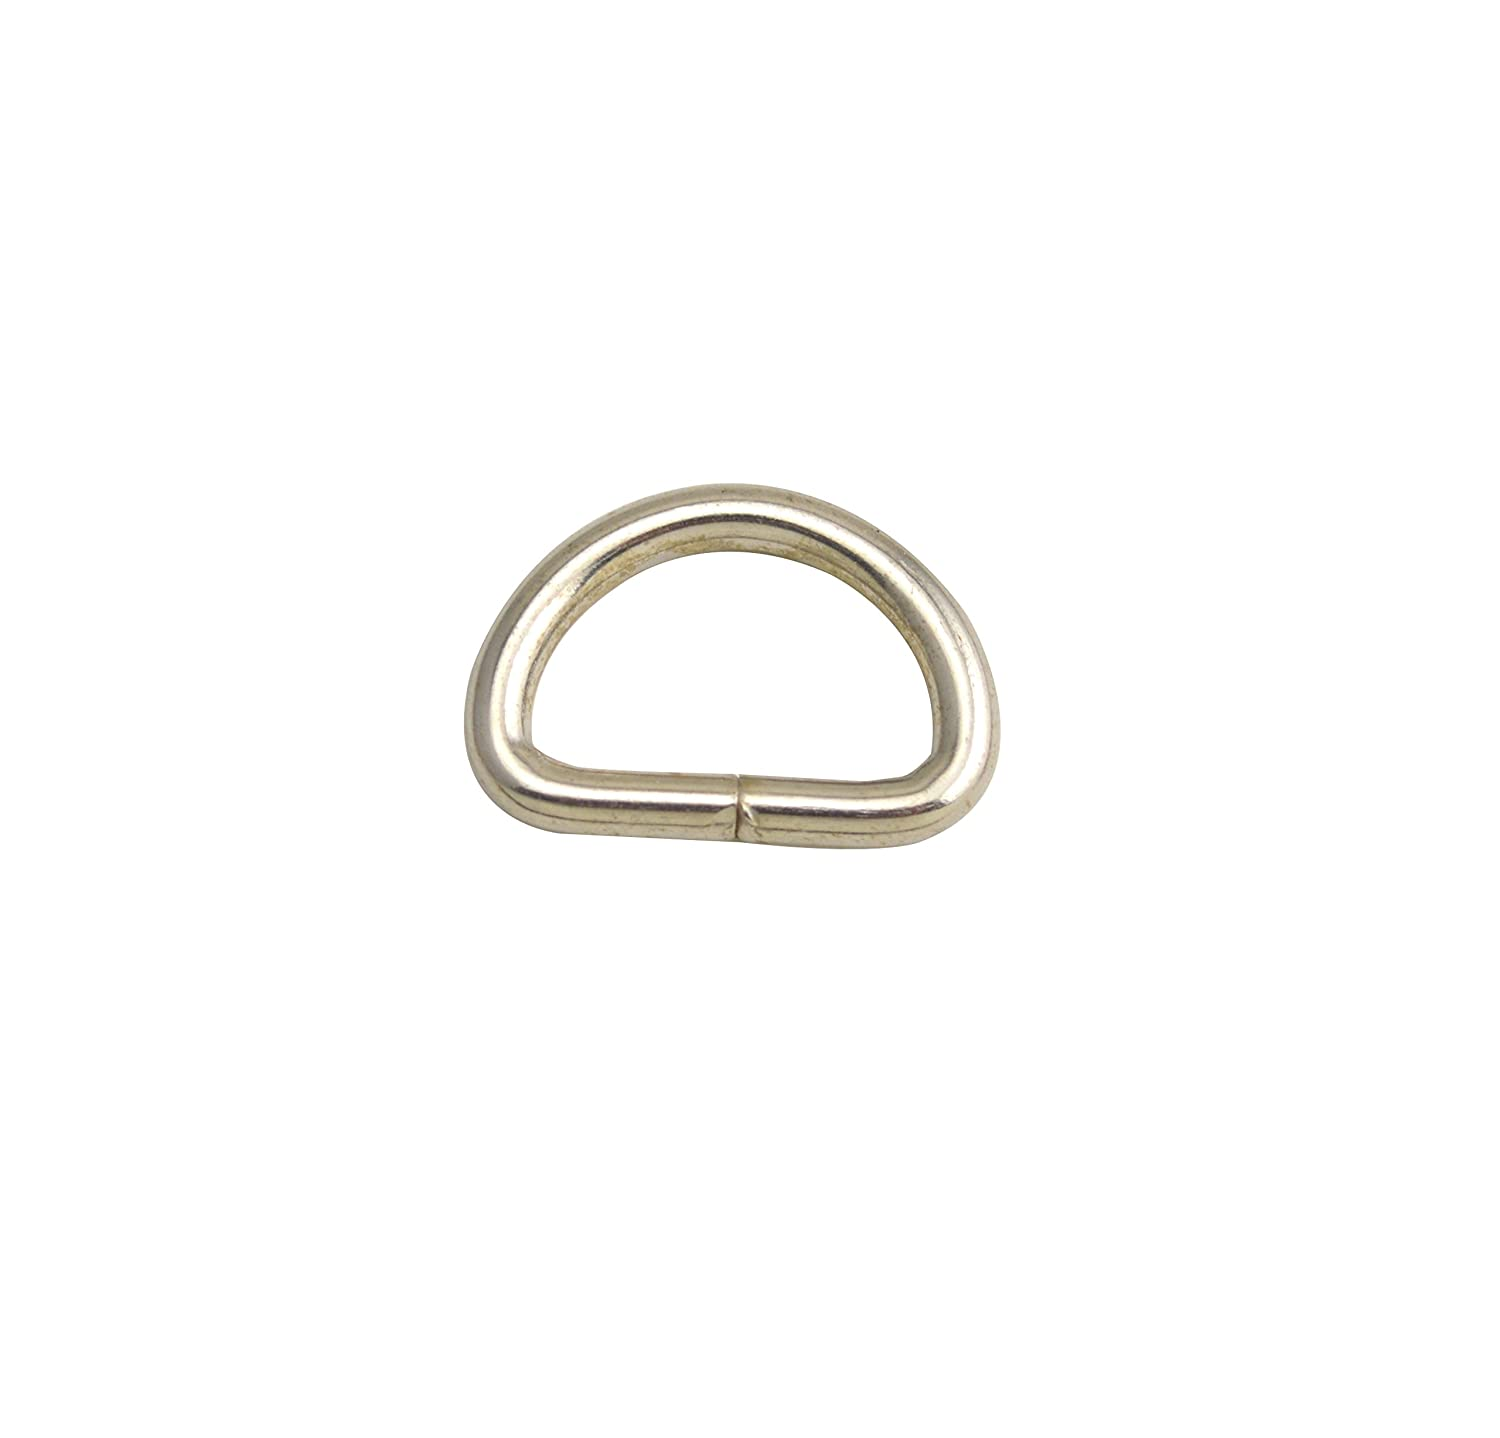 Wuuycoky 0.5 Inner Diameter Silvery D Rings Buckles D-ring Non-welded For Webbing Strapping Pack of 100